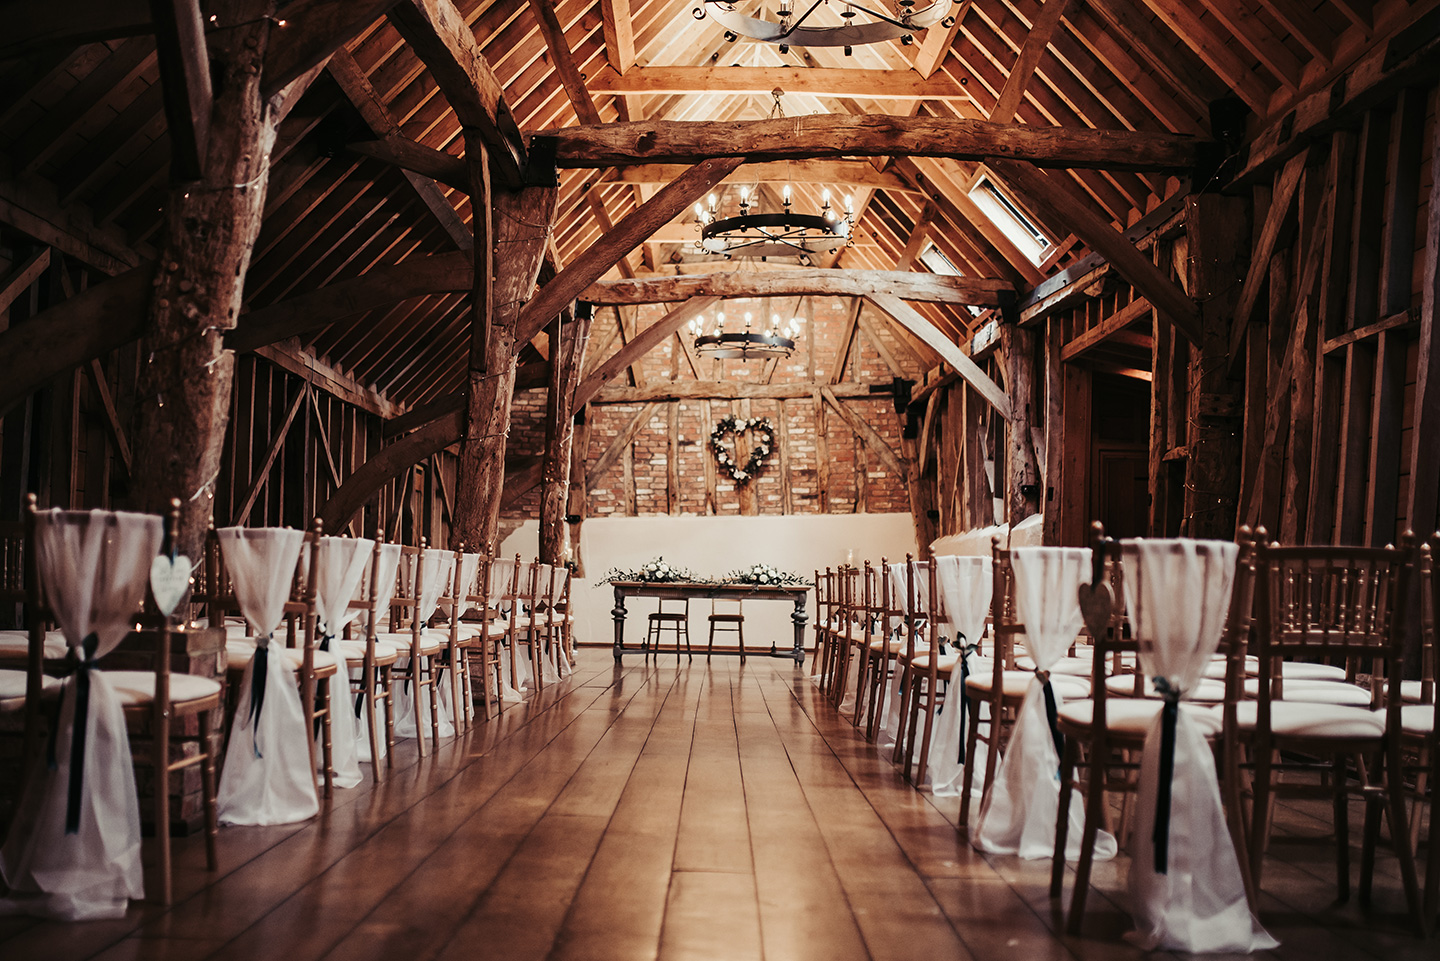 The Rickety Barn is a beautifully rustic space for the couple's wedding ceremony